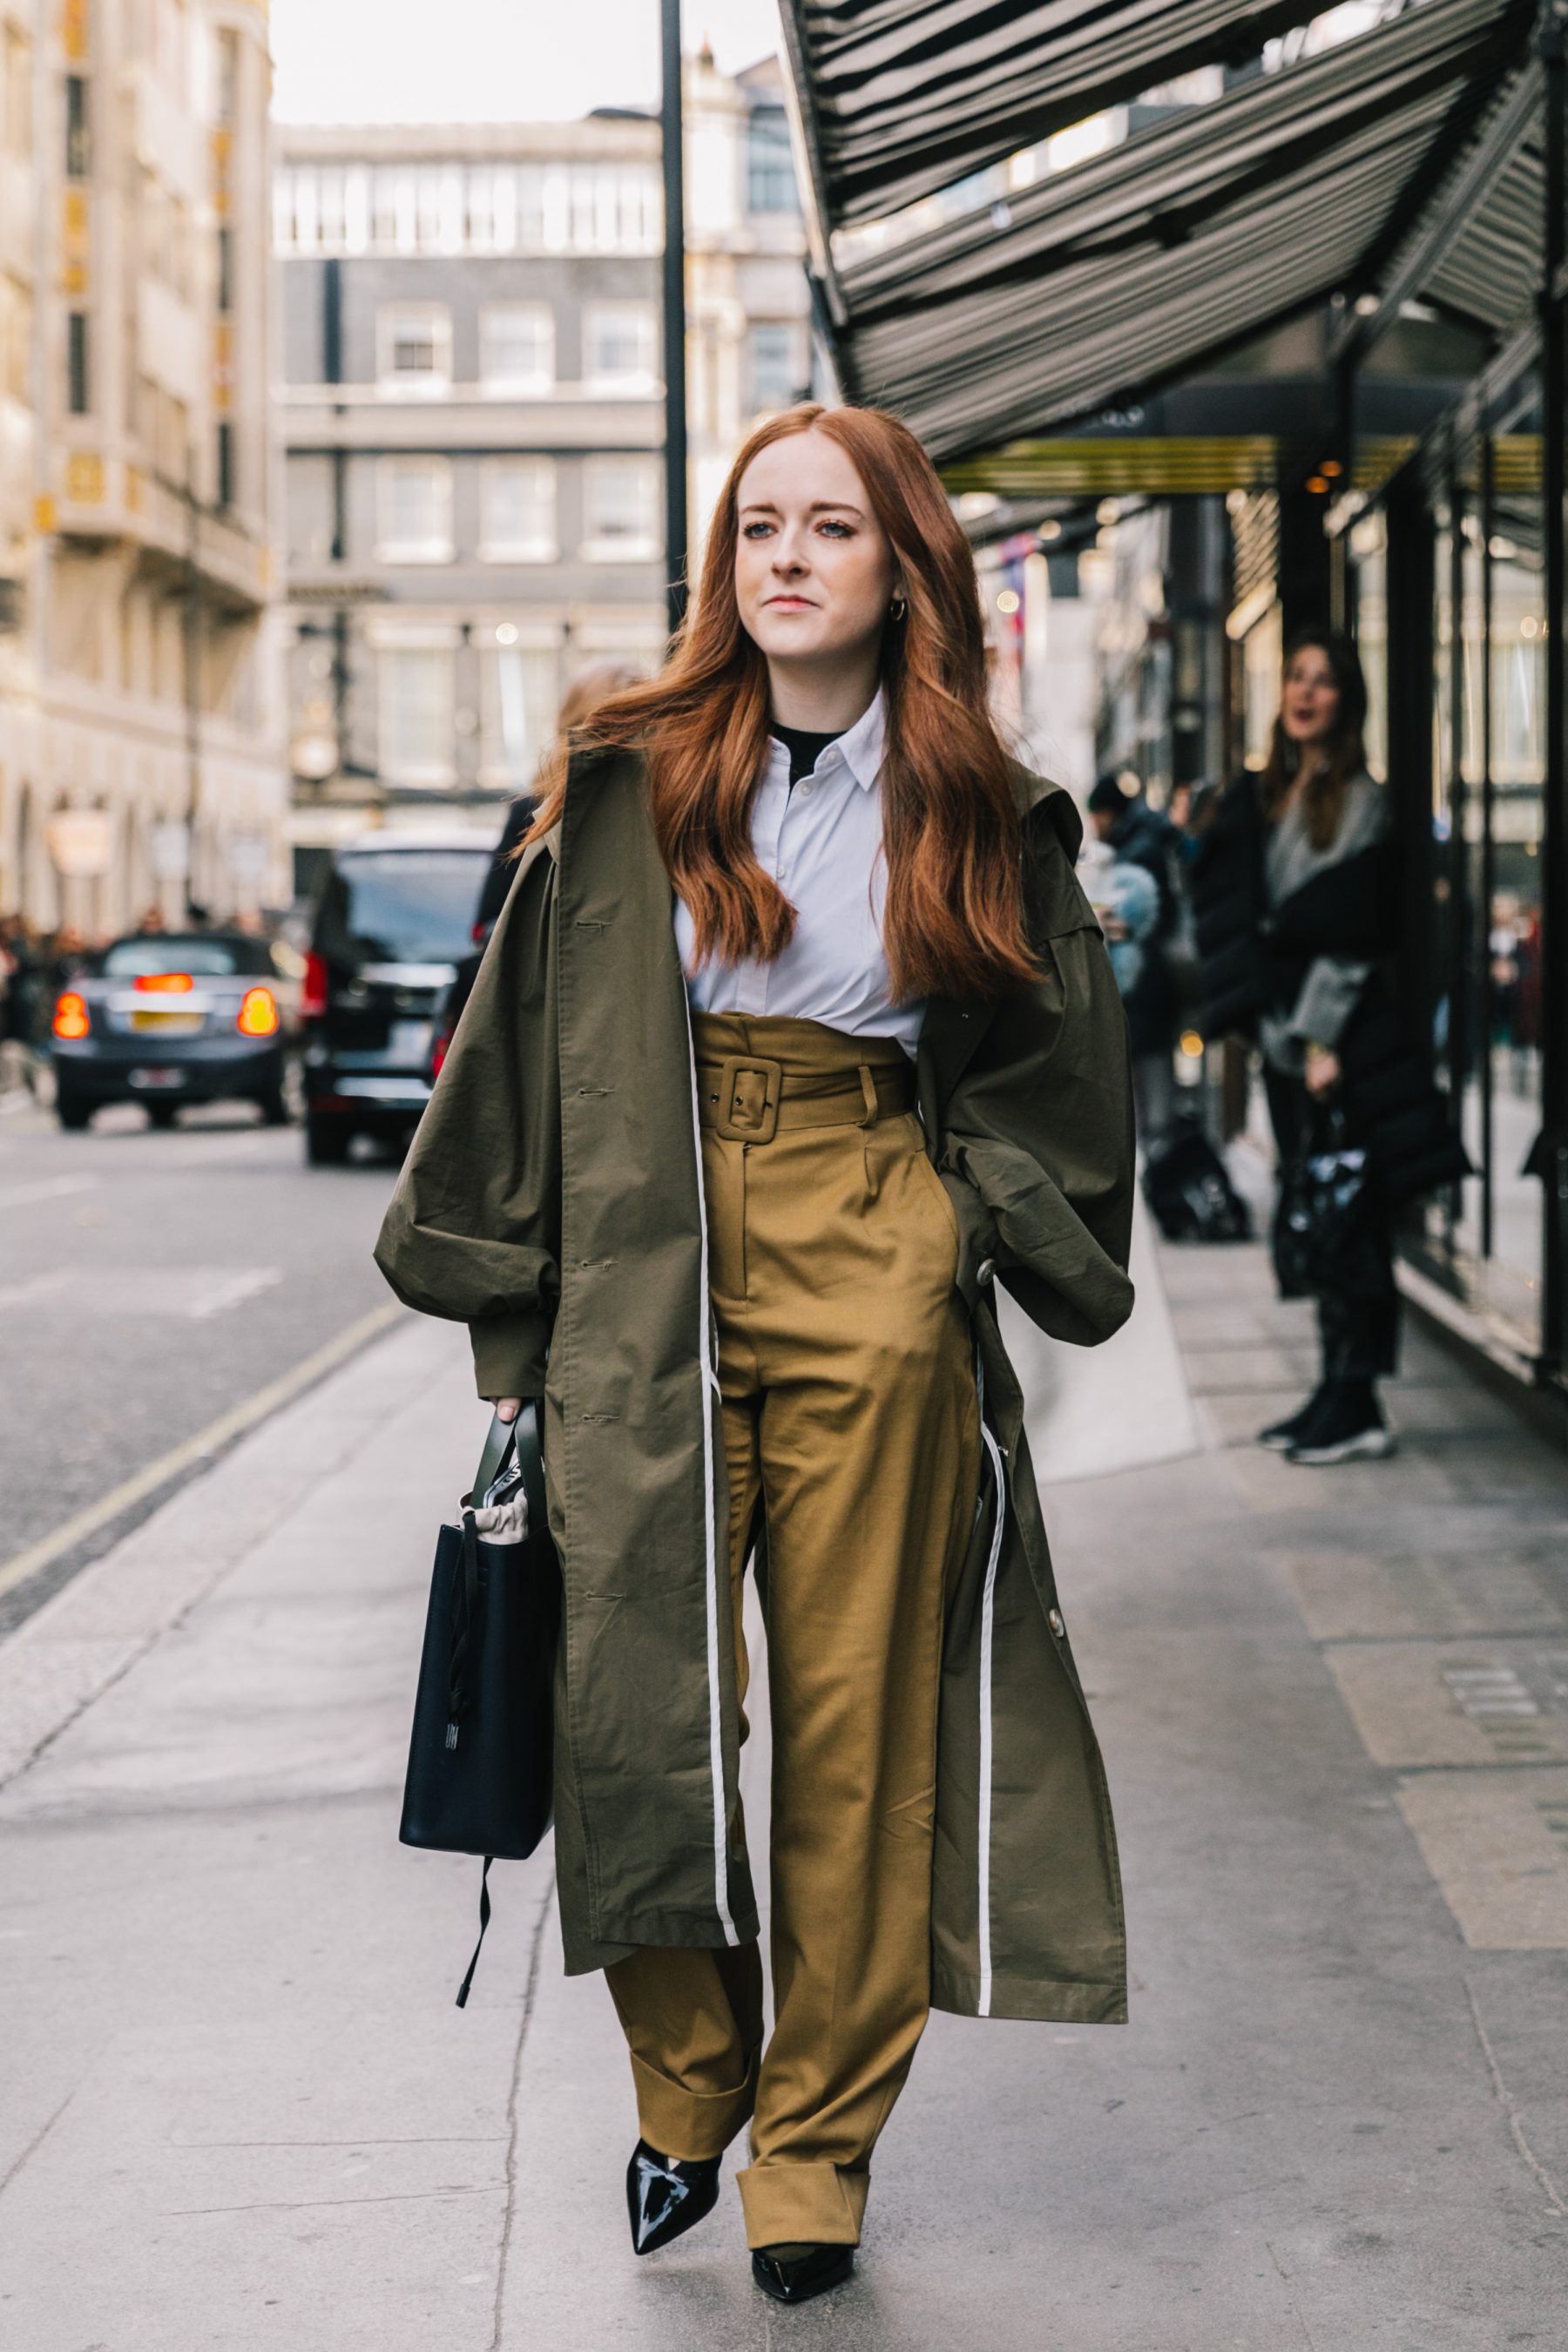 LFW FALL 18/19 STREET STYLE II | Collage Vintage